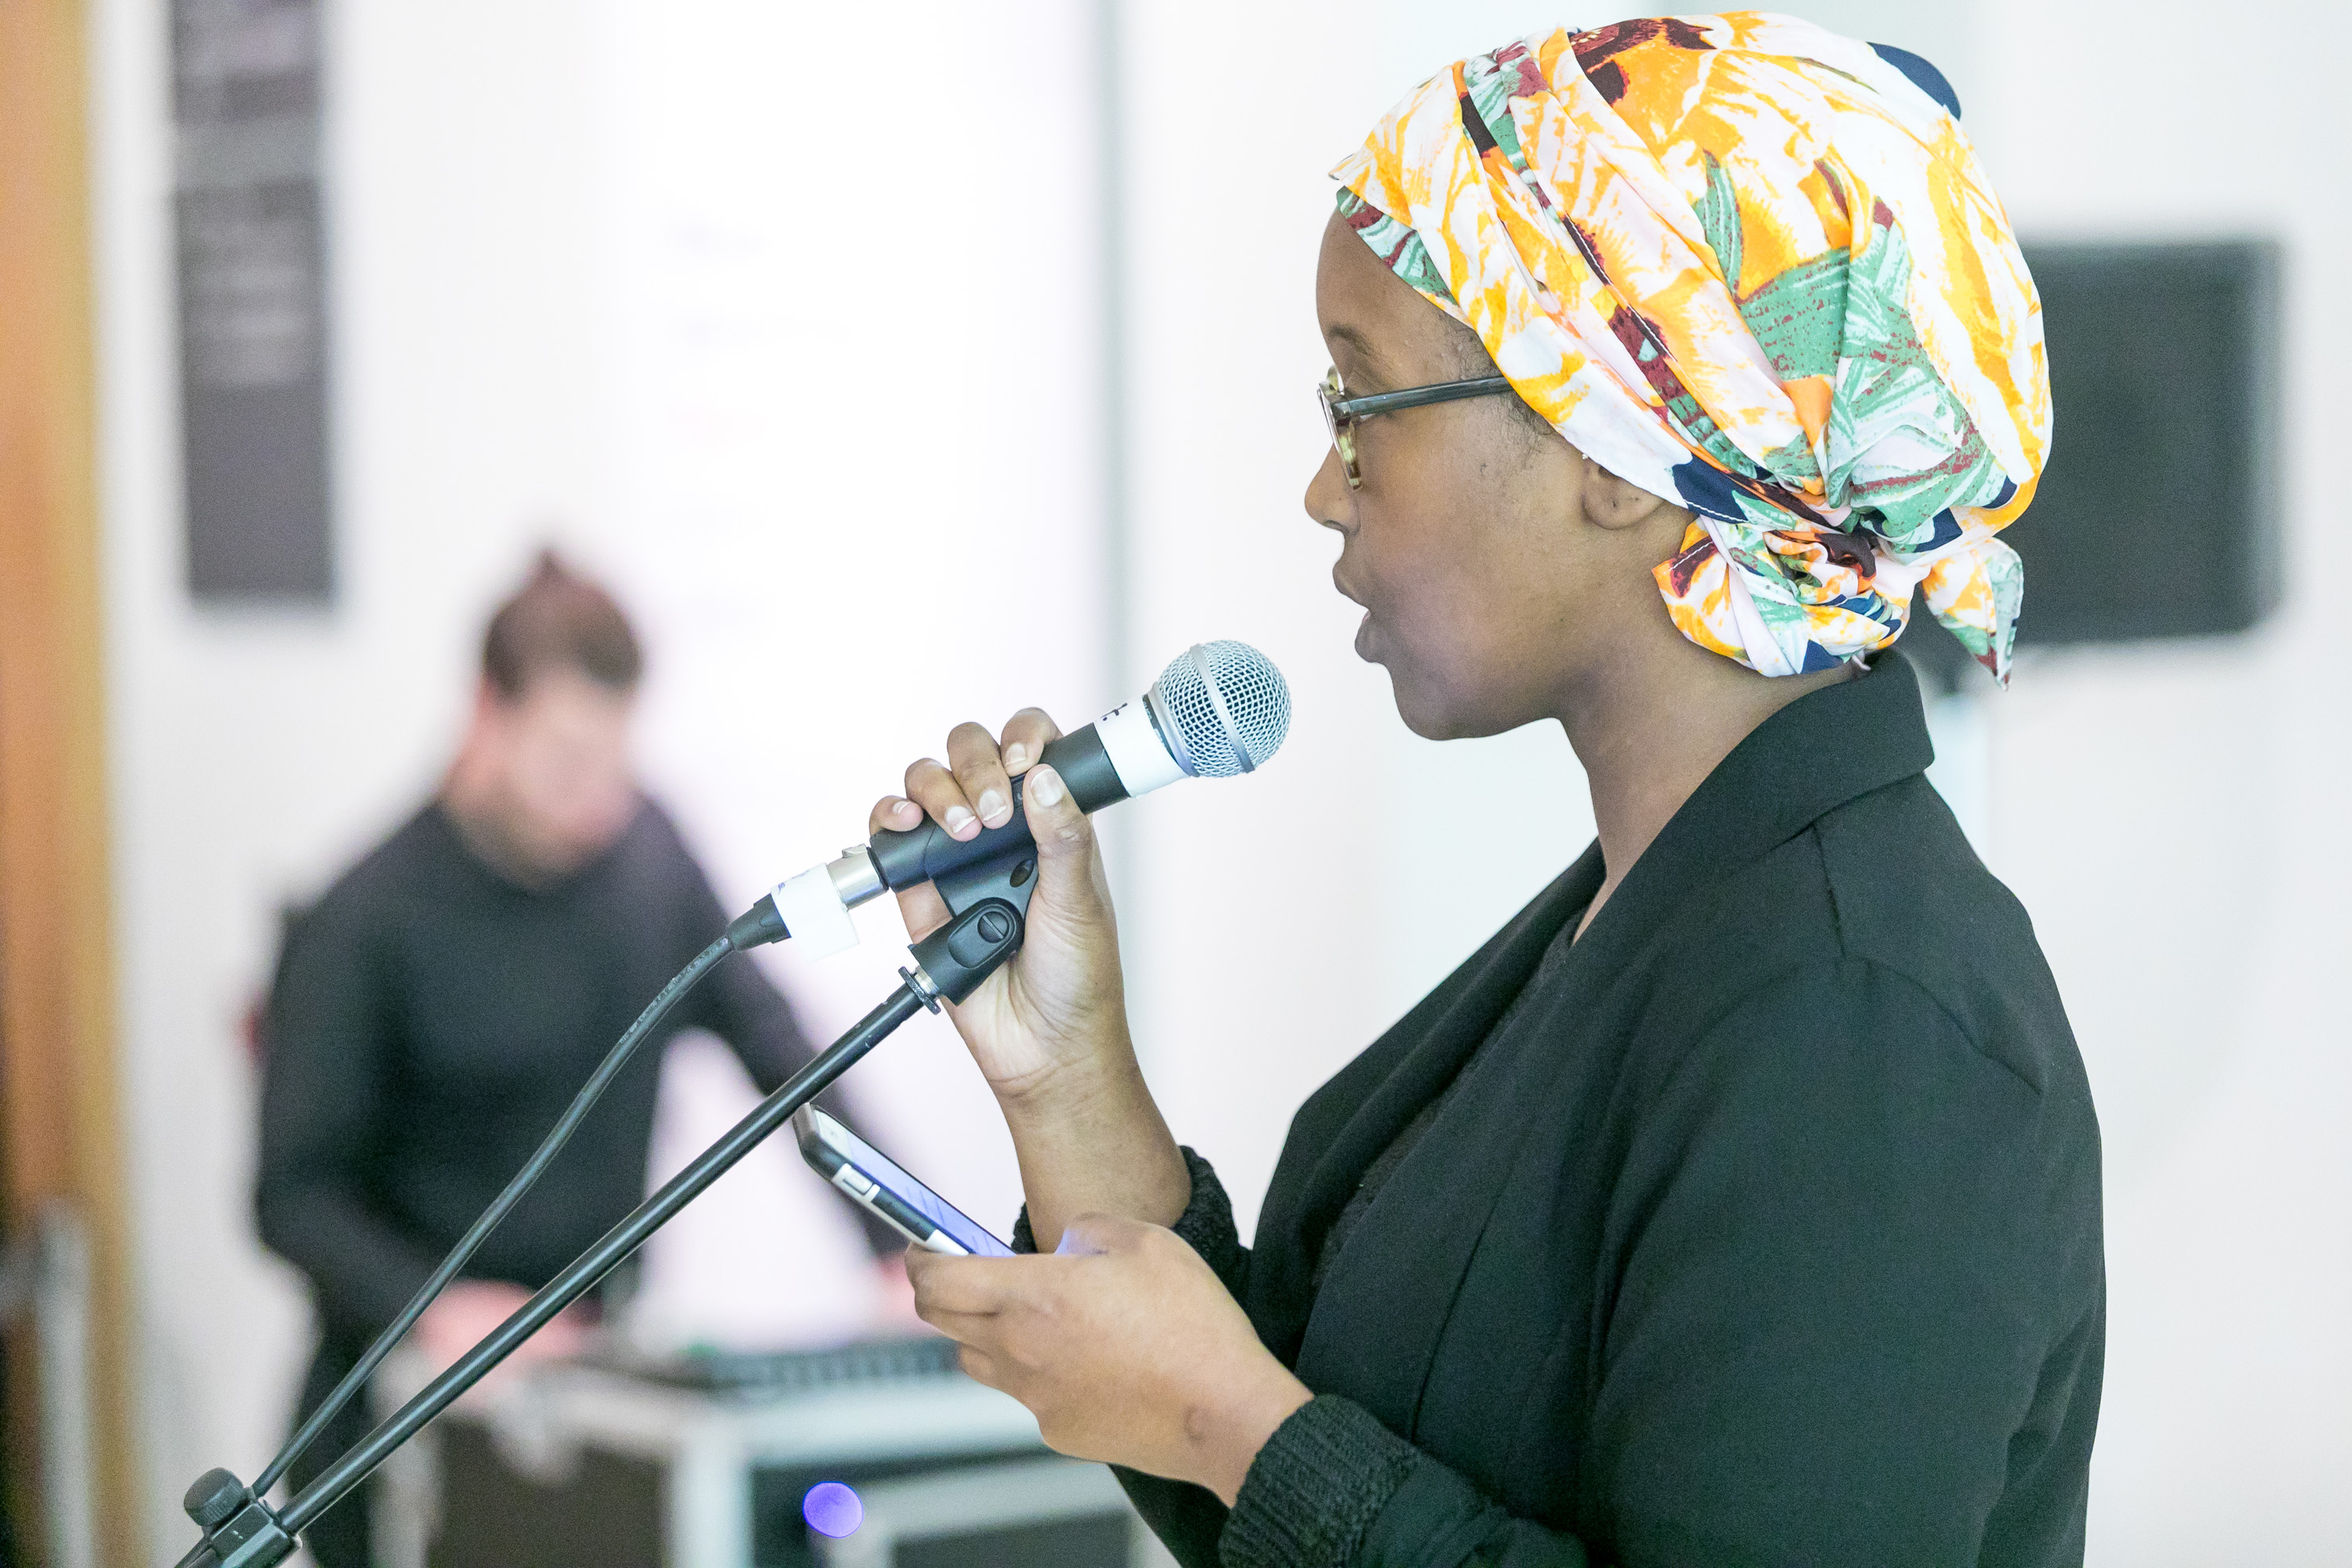 Throughout the day poet Hamdi Khalif performed her own poetry for museum visitors. Already an established performer Hamdi brought some of her own fans to the Museum and drew on a range of inspirations from personal memories, contemporary affairs and themes of identity.